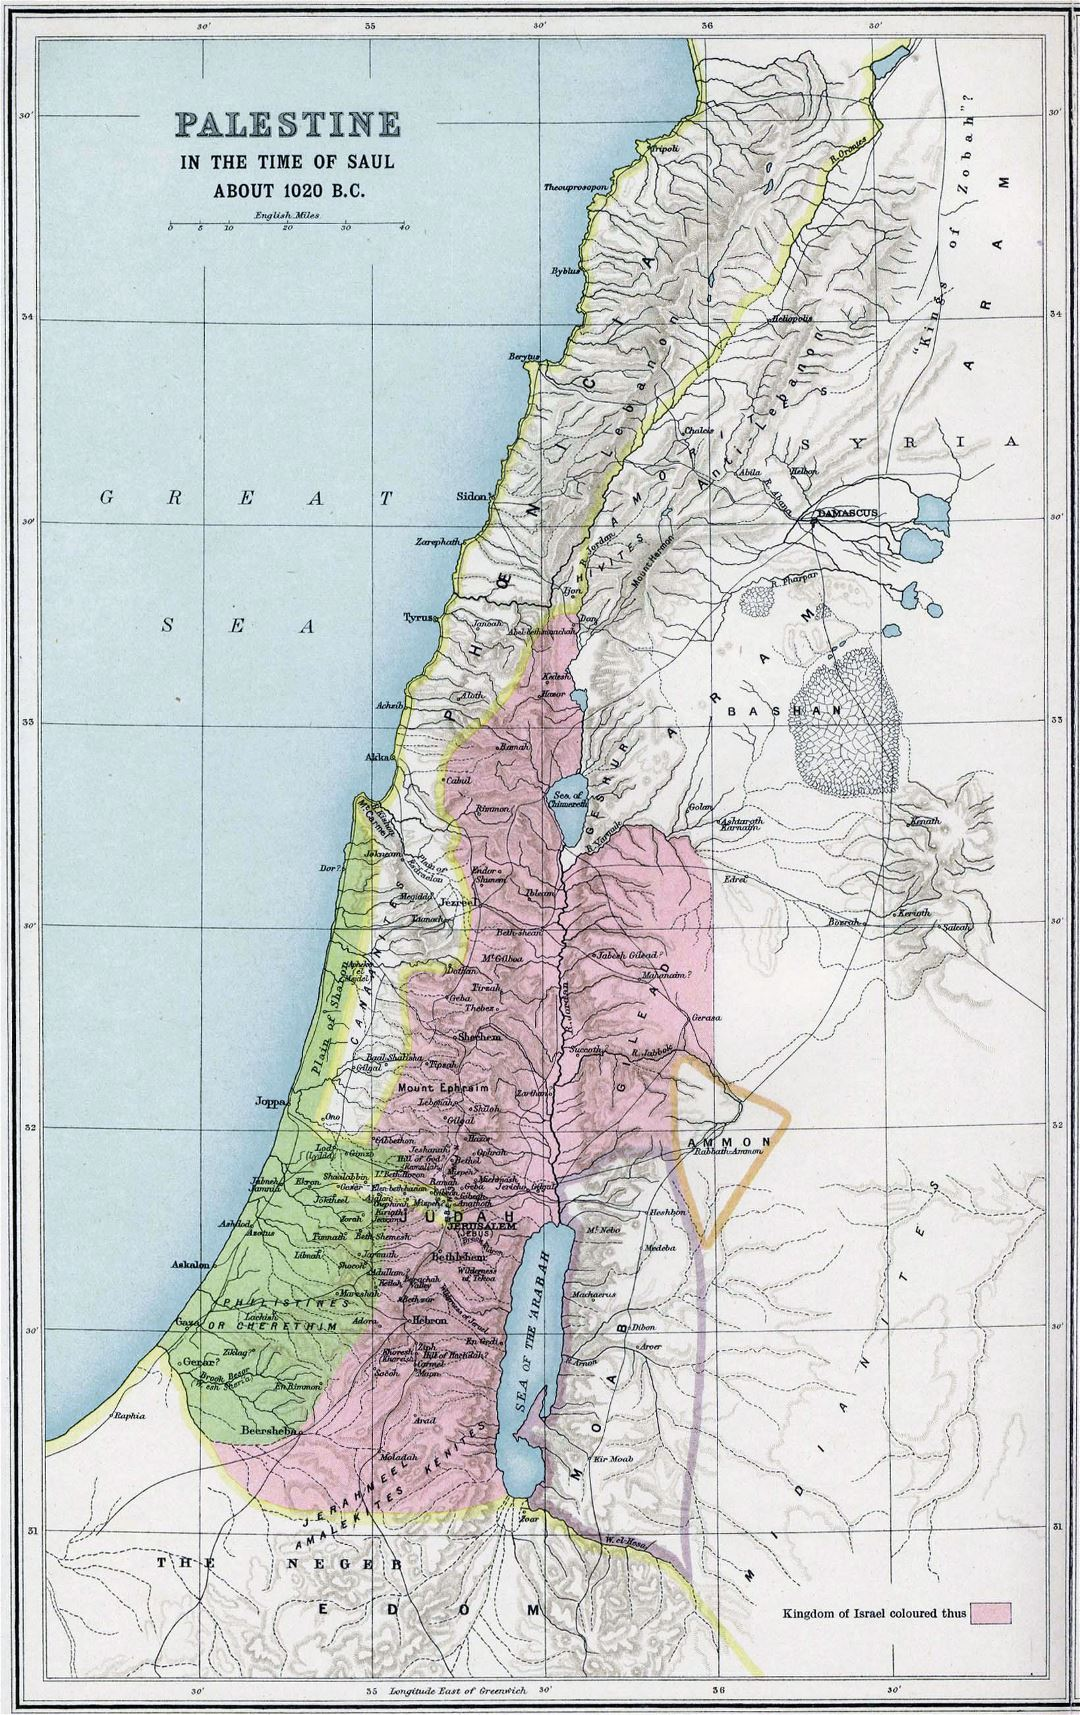 Large old map of Palestine 1020 B.C.